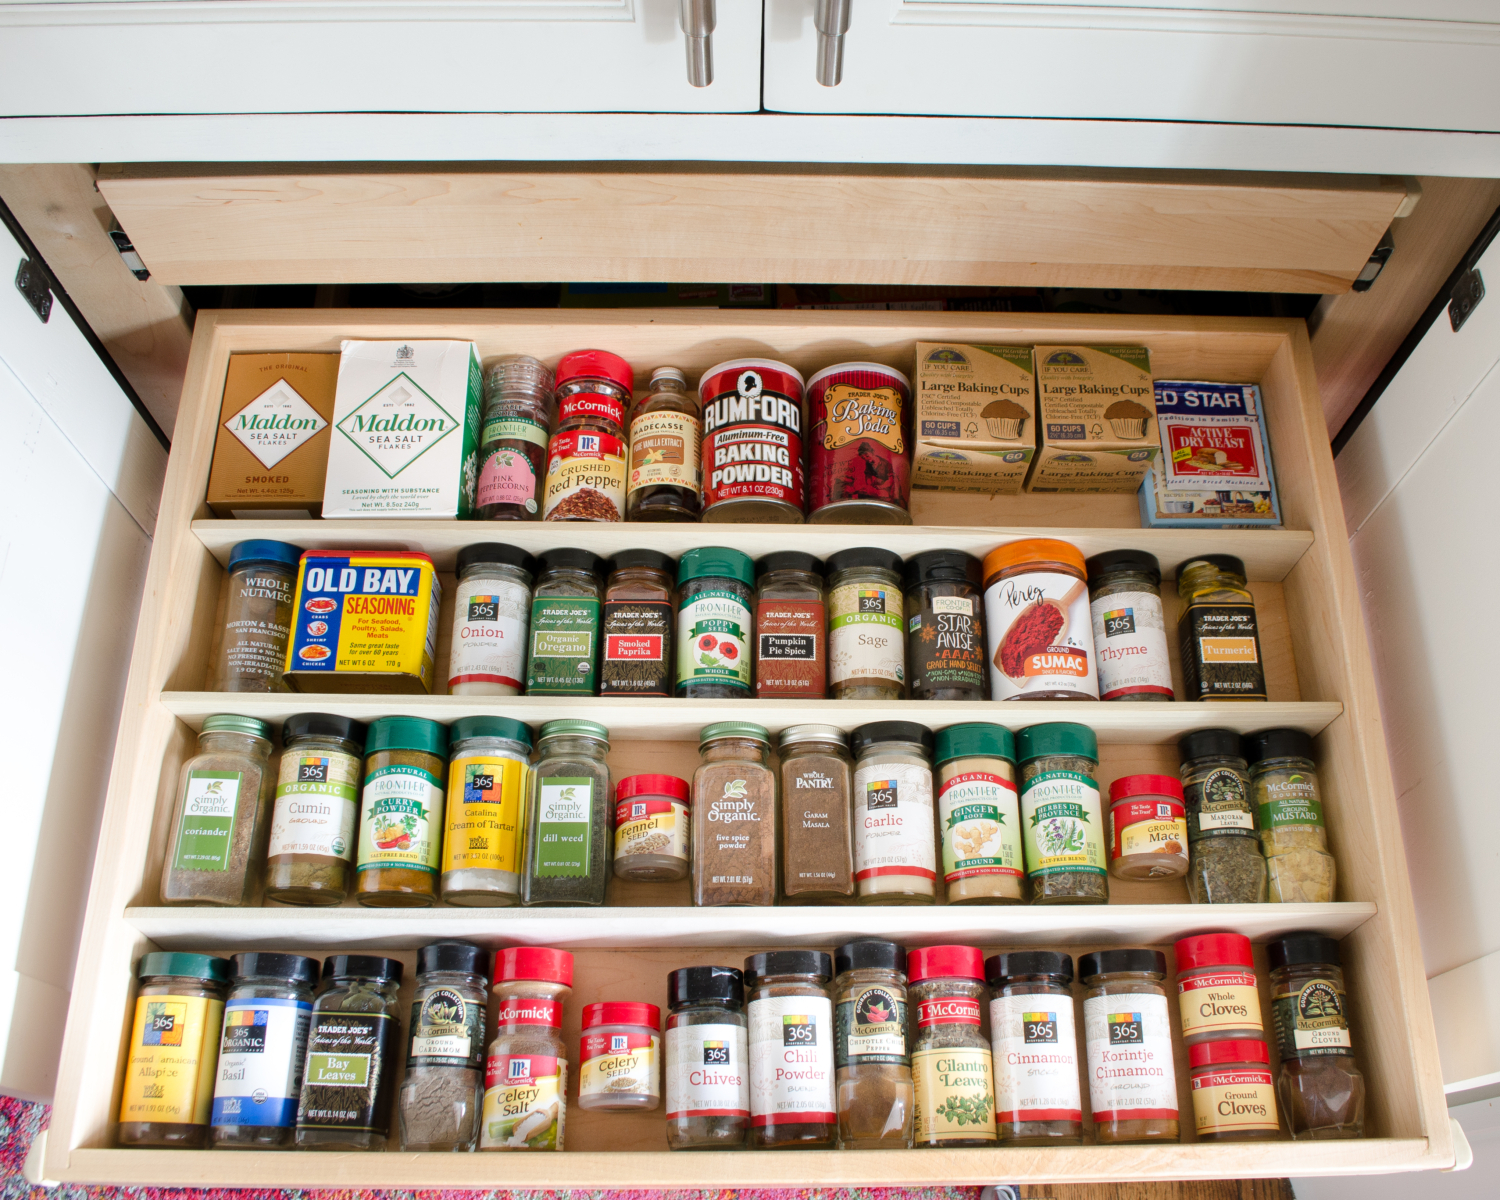 Affordable and easy kitchen organization ideas including how to organize spice jars.